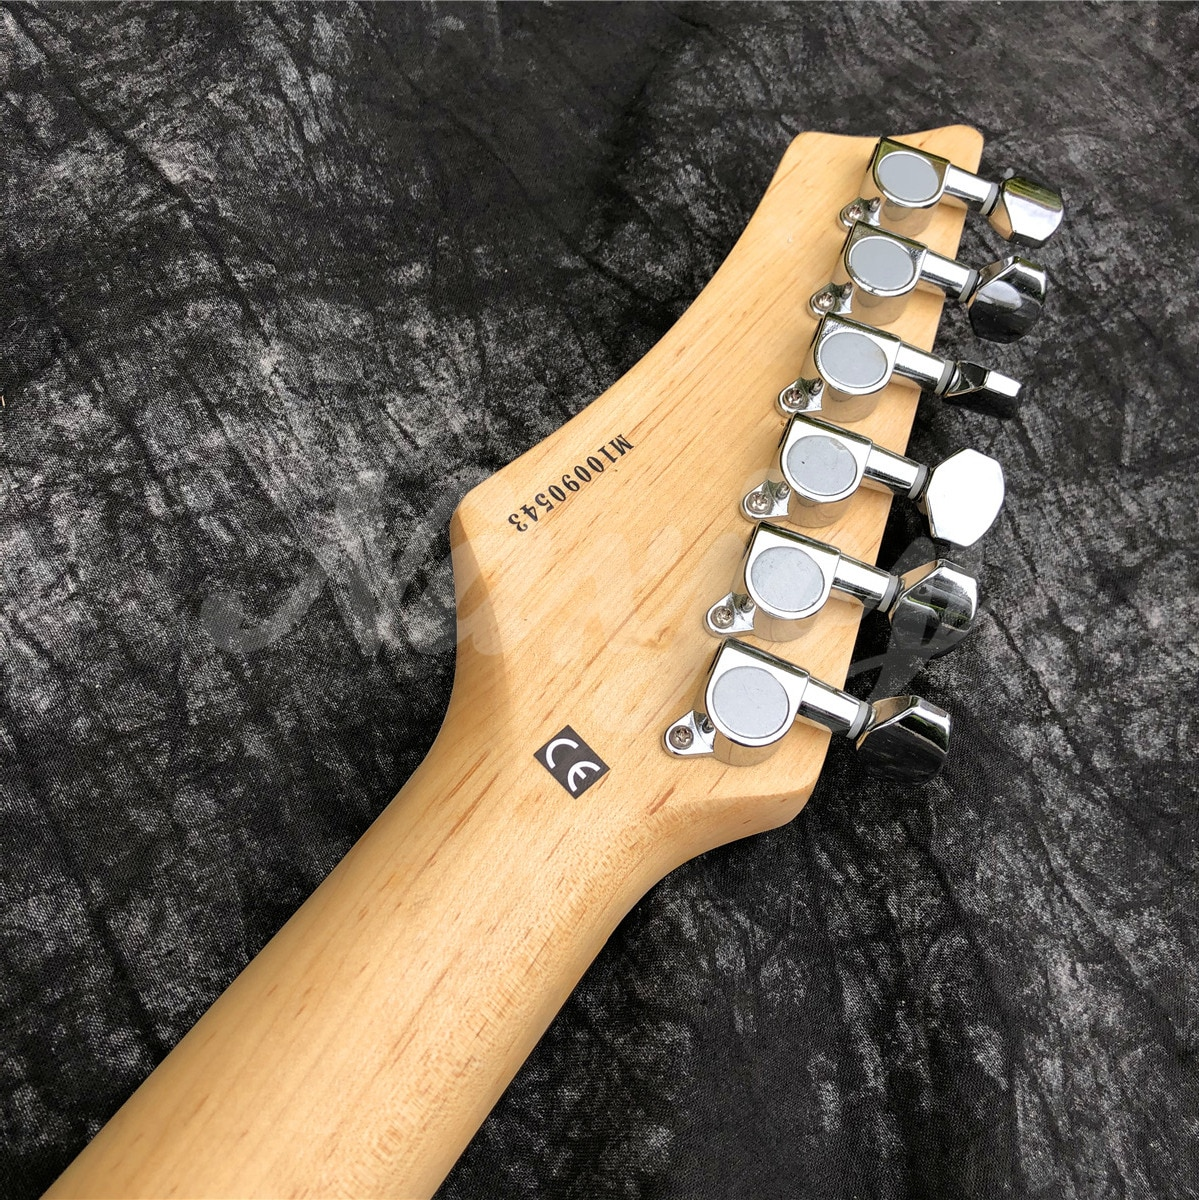 2021 New Glossy Orange Color 6 String Solid Wood  Electric Guitar,Real Photos,In Stock,Free Shipping enlarge